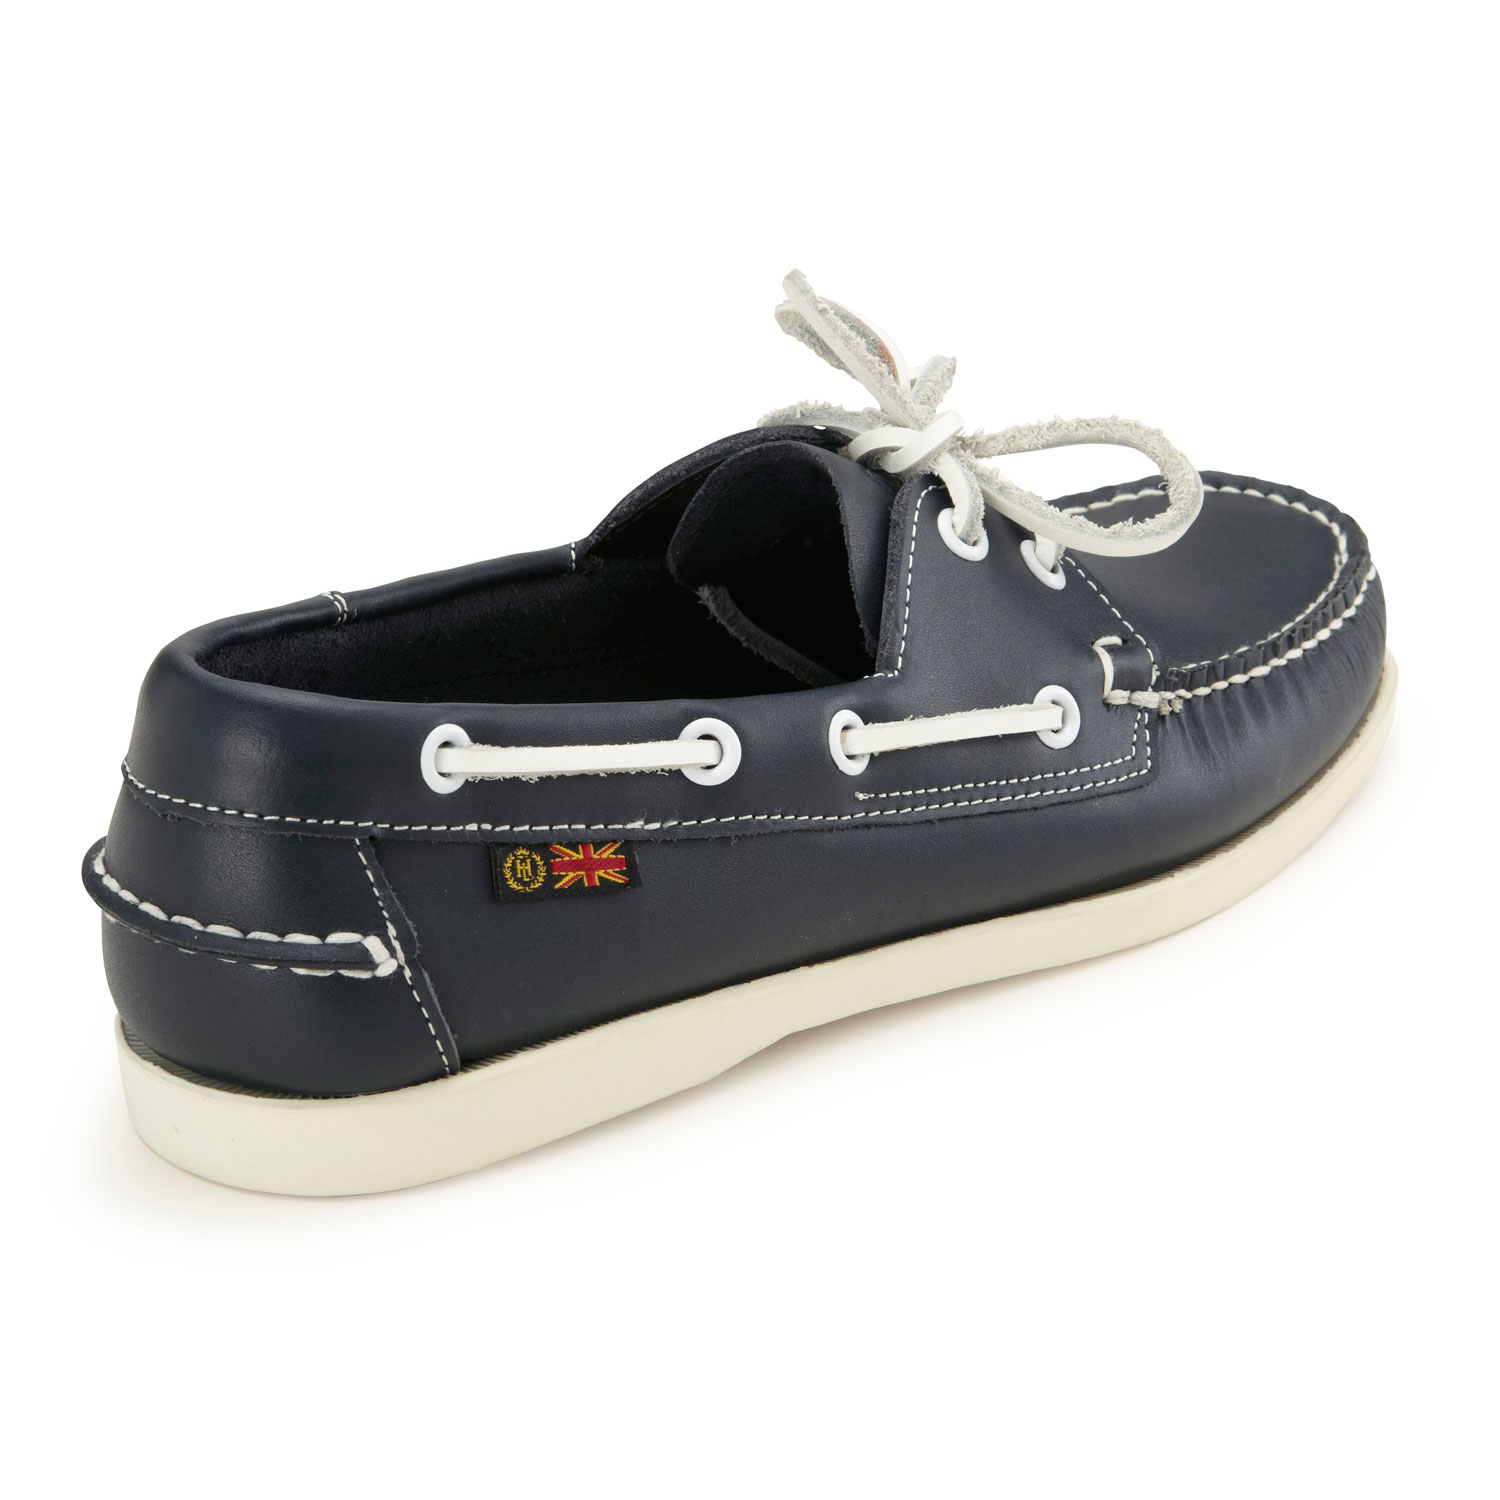 Are Deck Shoes Slip Resistant